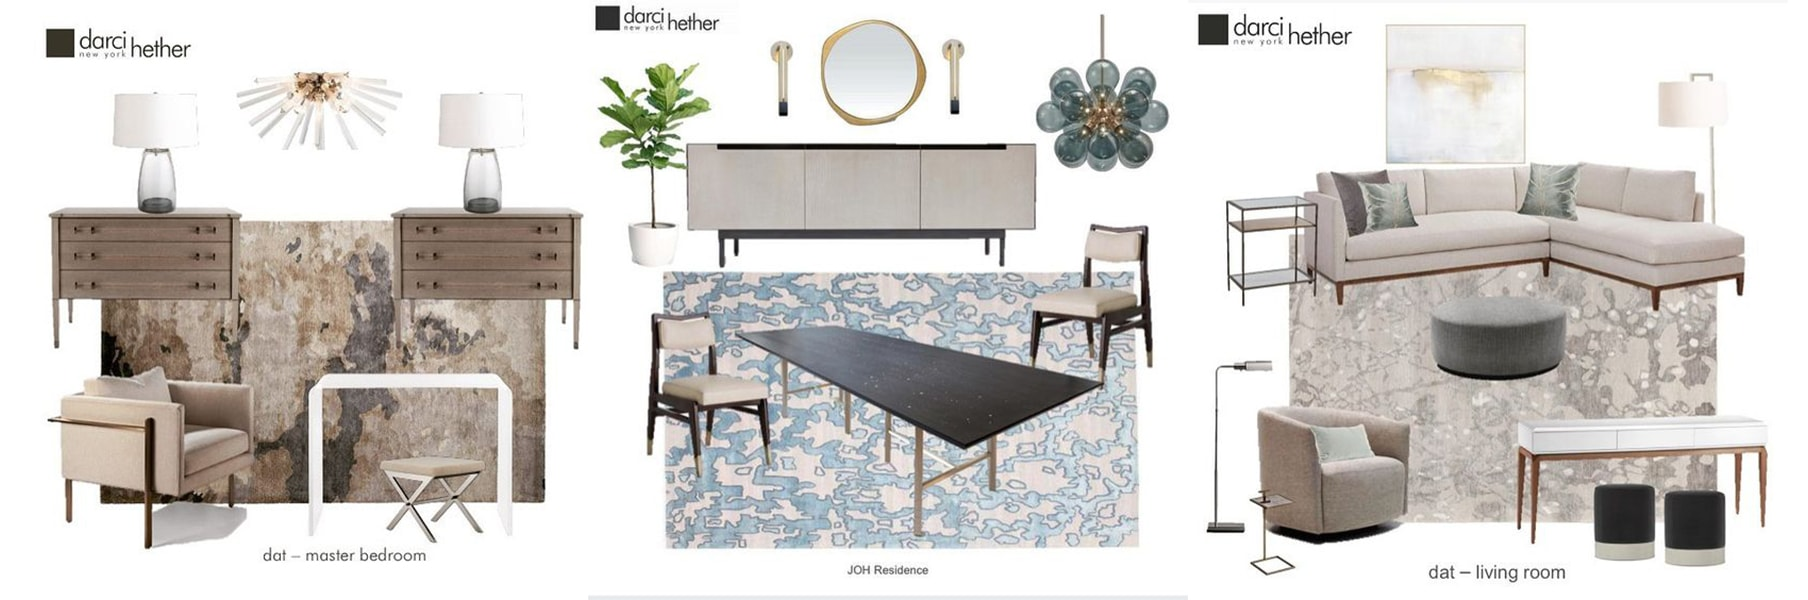 mood boards living room dining room - darci hether new york - patterned area rugs